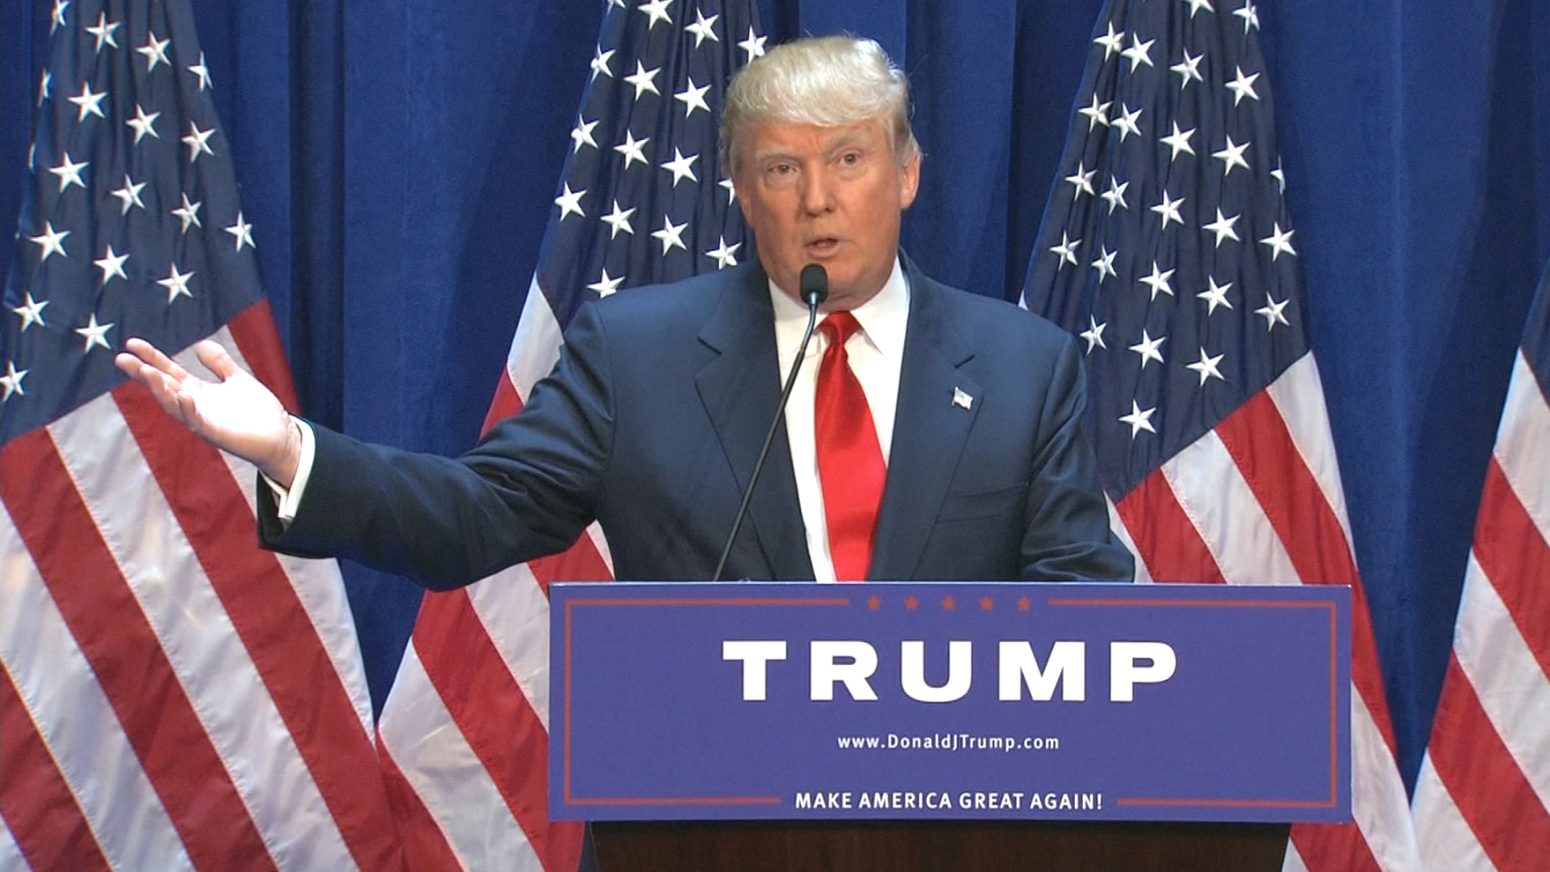 USAfrica: In stunning upset, Trump beats Clinton; Obama's legacy on the line. By Chido Nwangwu